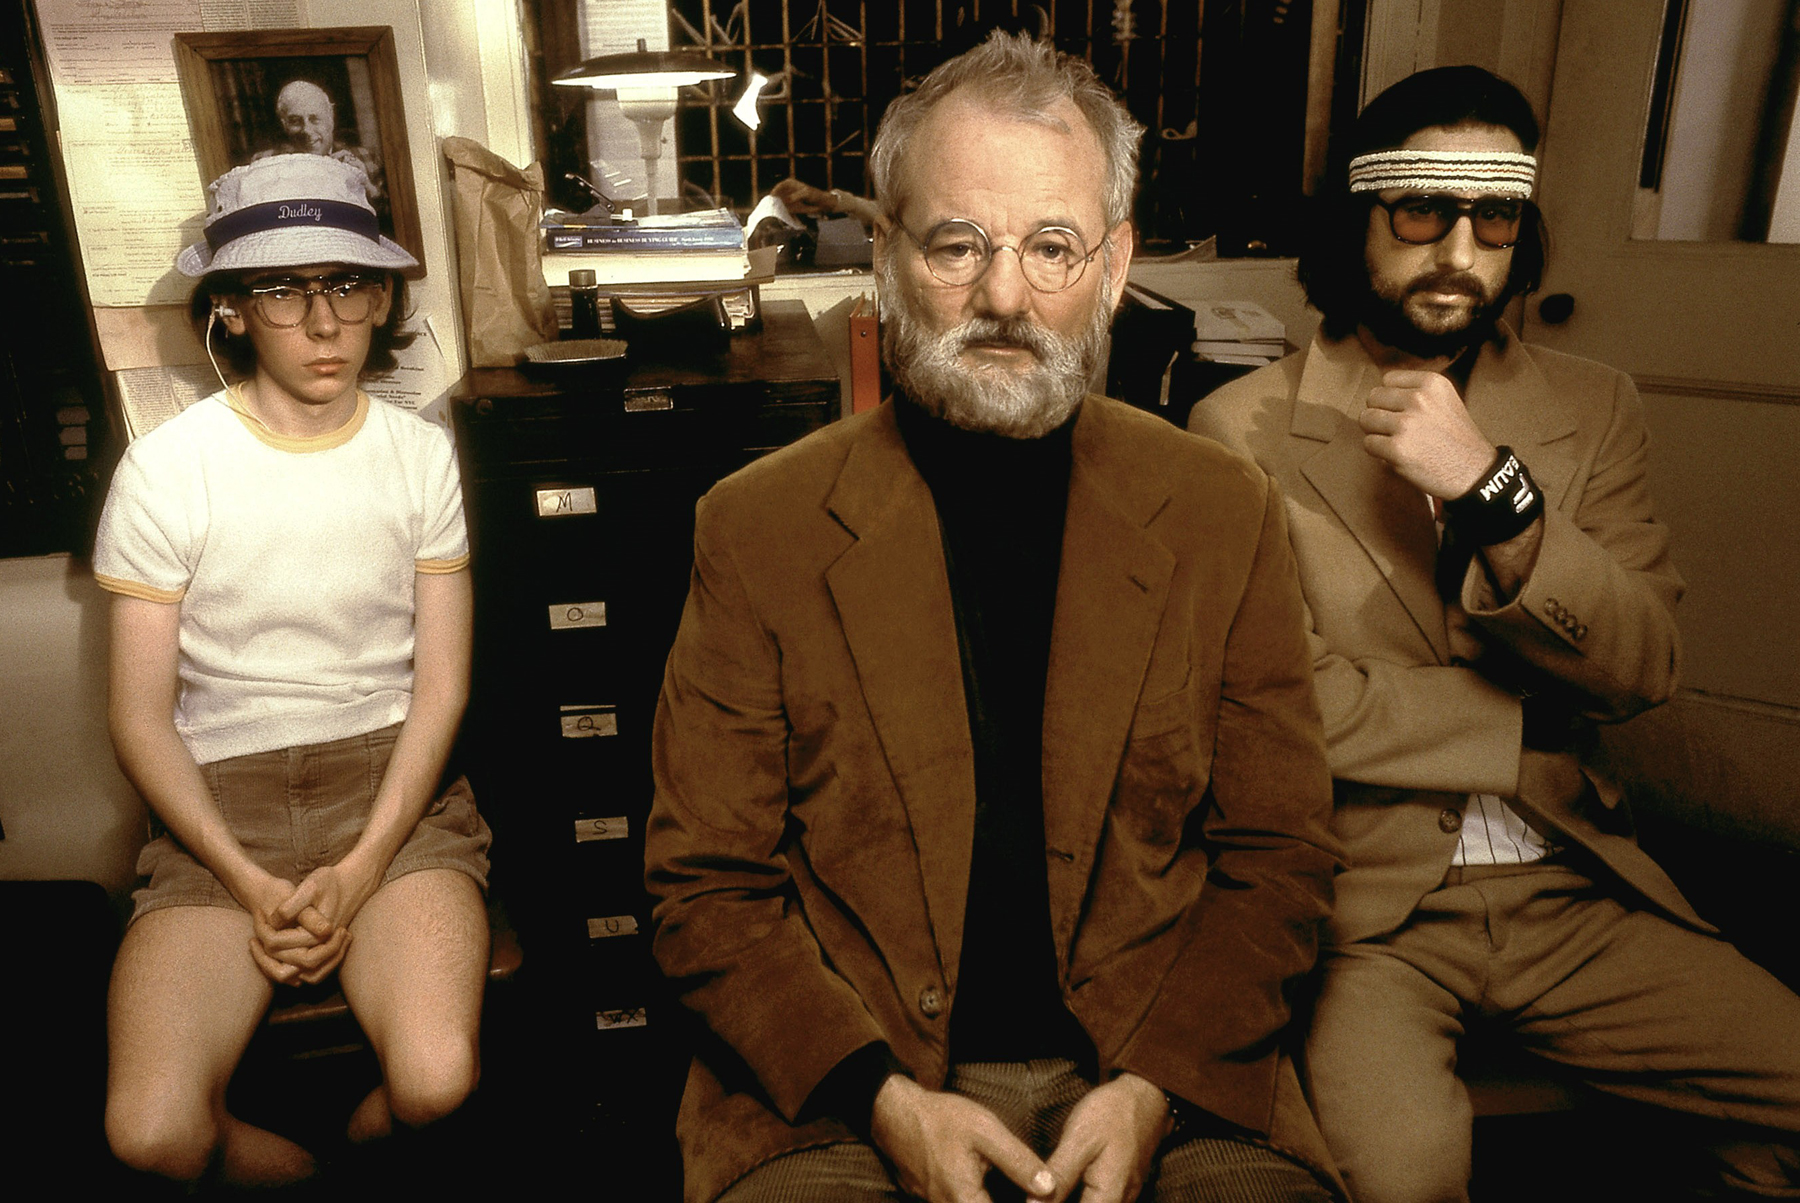 What About Bill?: Wes Anderson on Working With Bill Murray